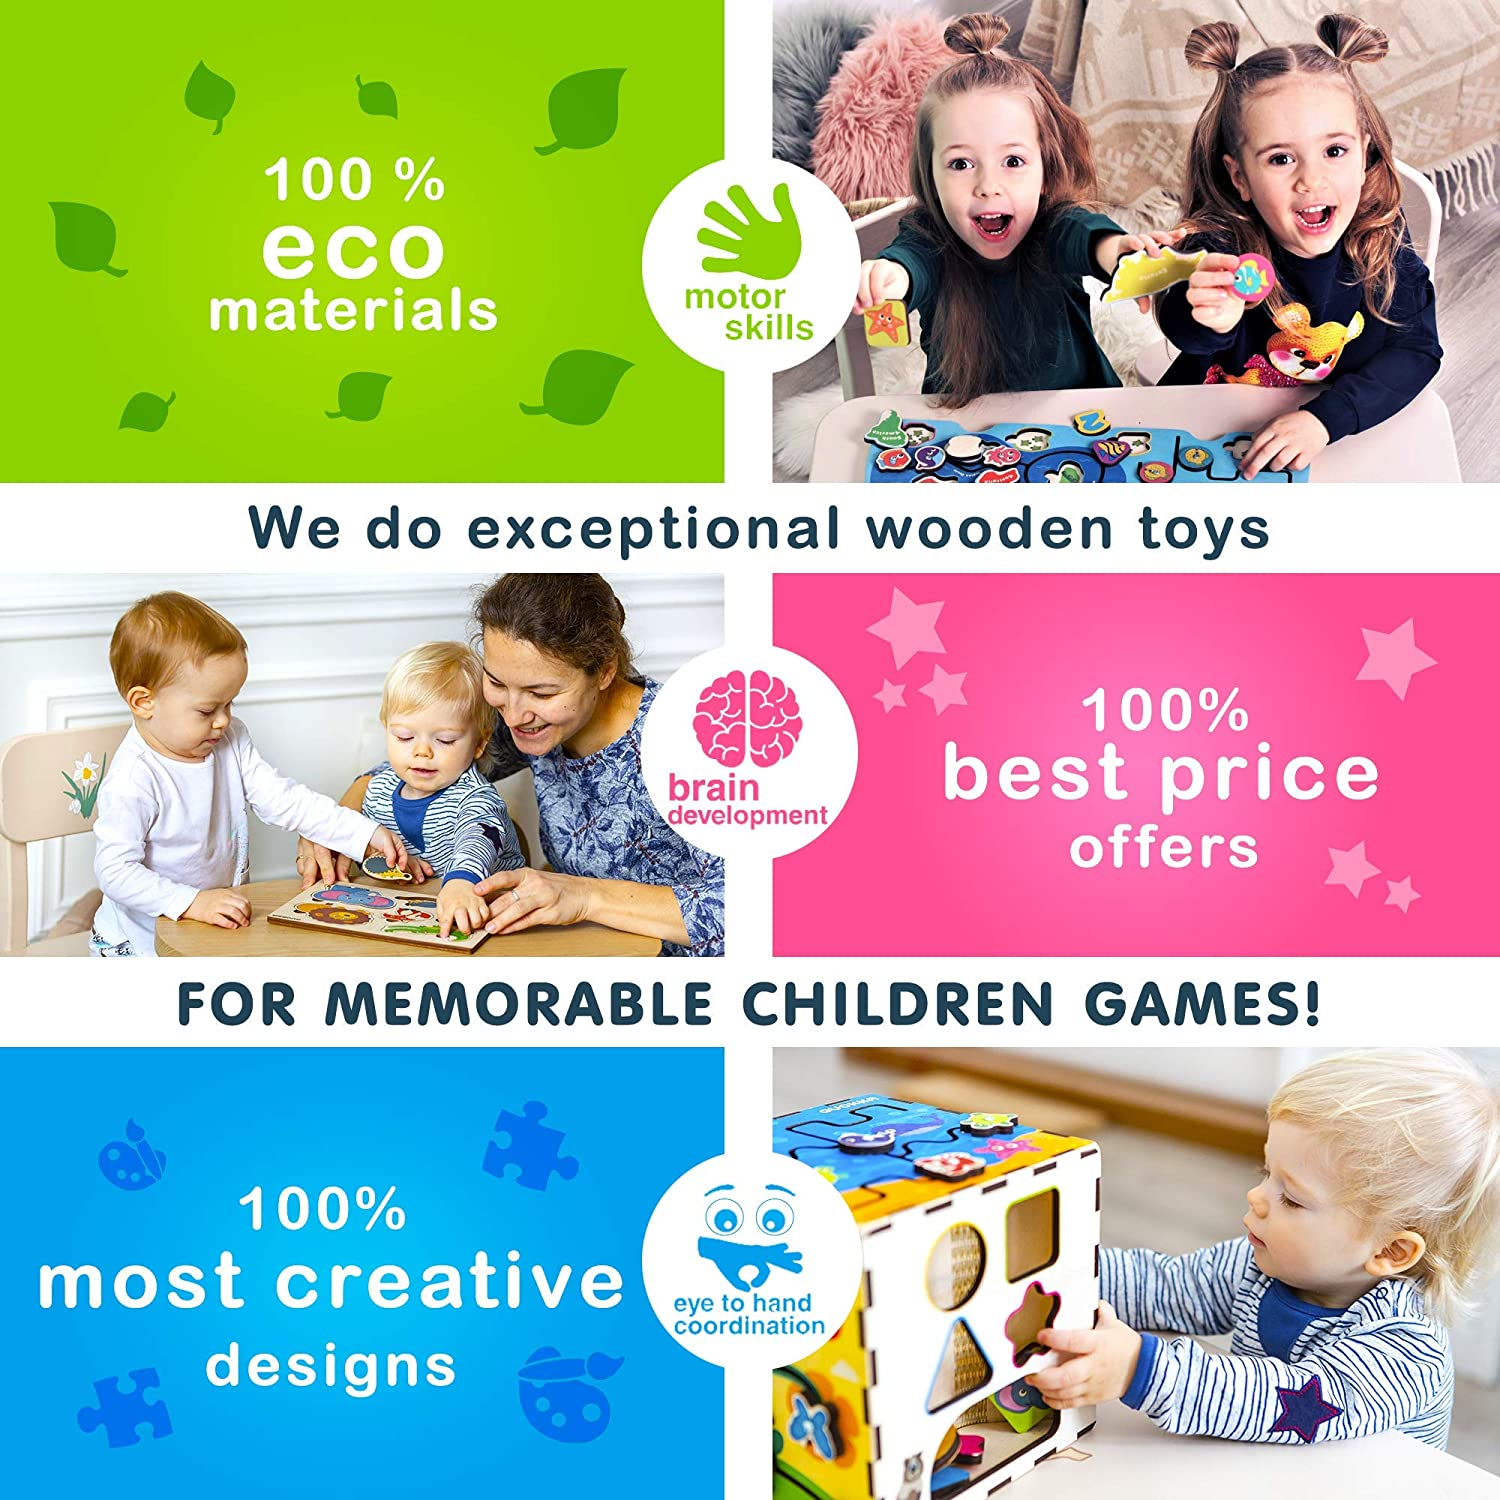 Size 7.5 x 9.8 Logical Thinking for Kids | For Toddlers 2 and 3 Years Old Quokka Wooden Puzzle for Toddlers Peg Buildings Puzzle Shapes 8 pcs Developmental Toy for Baby